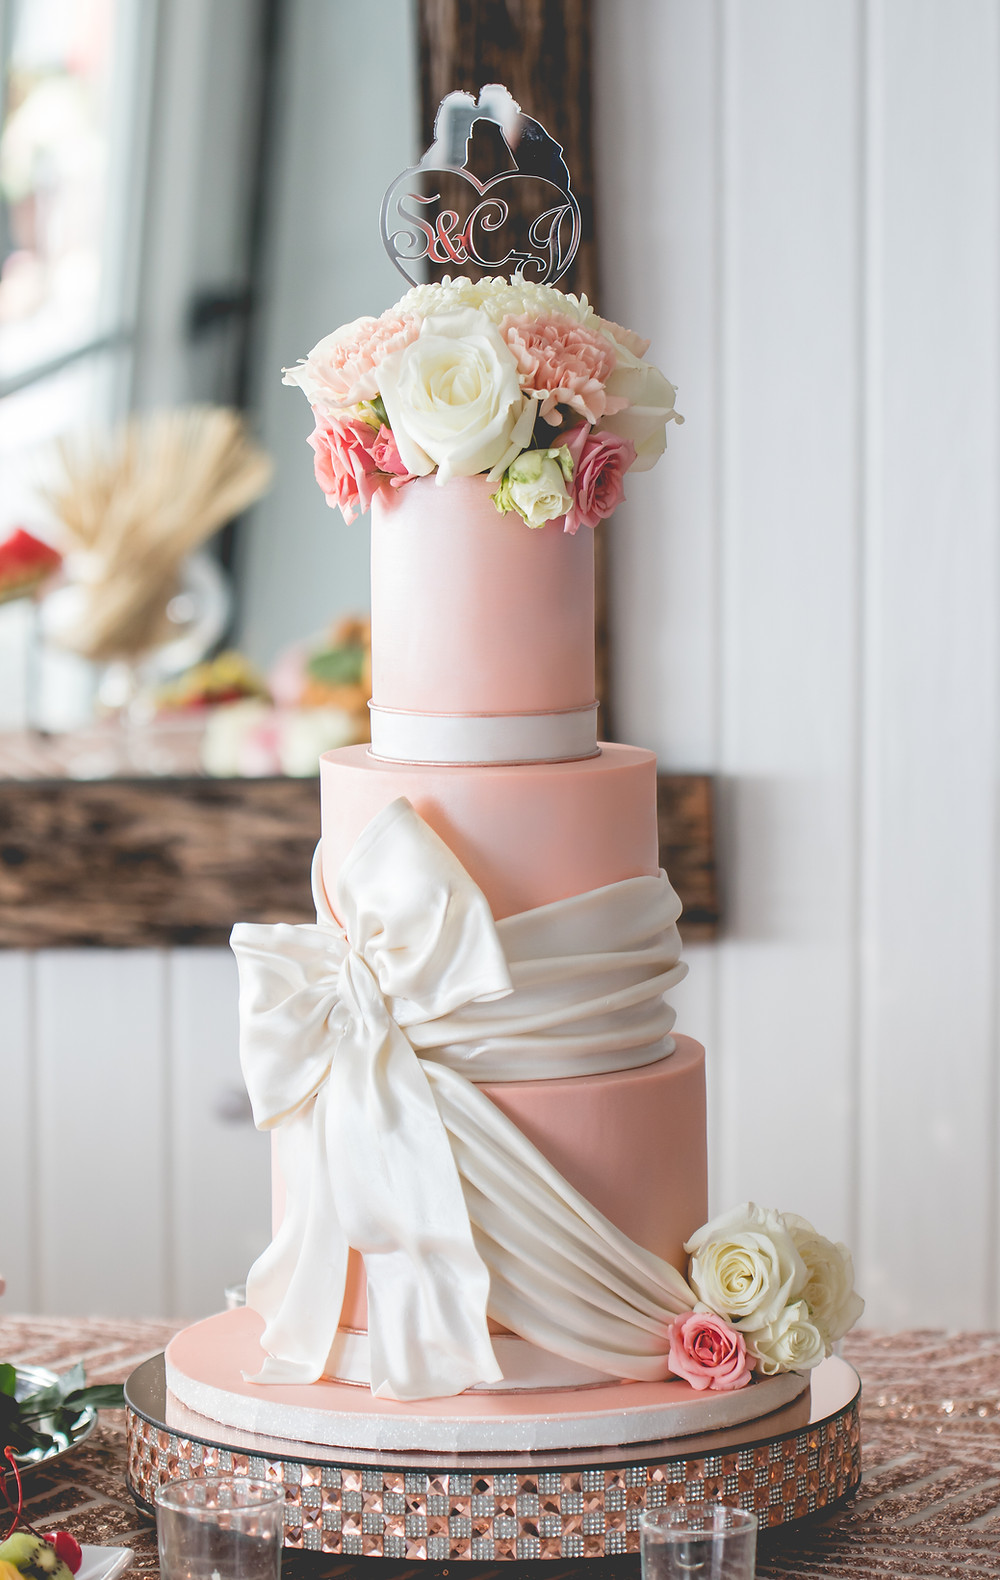 Three tier pearl peach wedding cake with over-sized edible bow and bouquet of fresh flowers